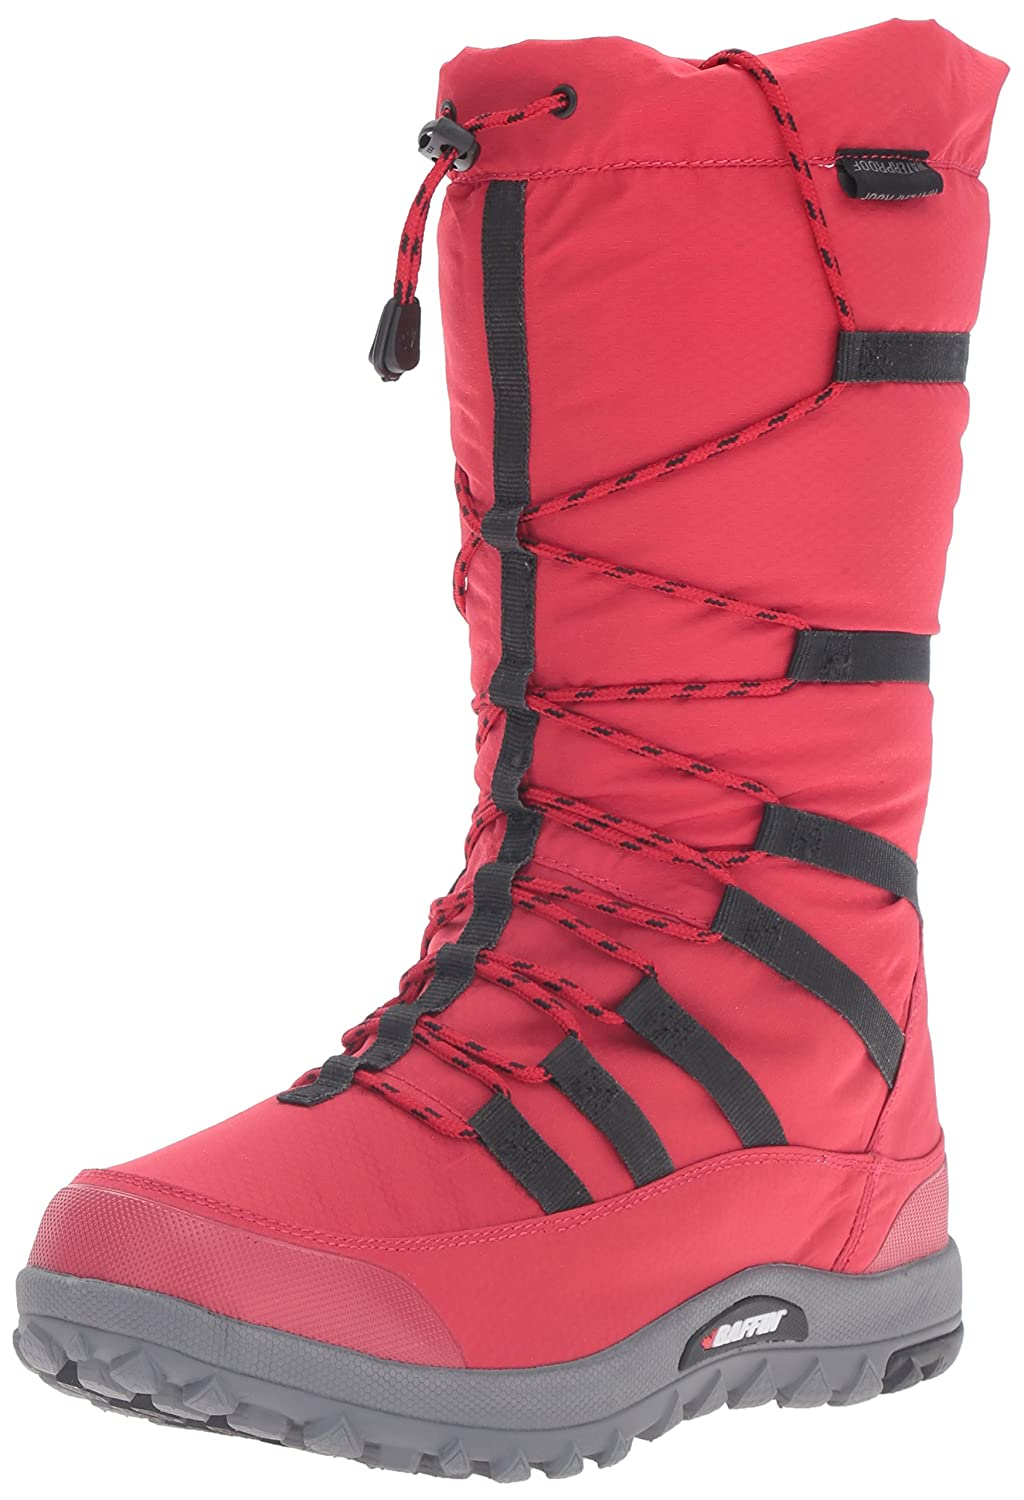 Baffin Women's Escalate Snow Boot B01BOWR7H6 10 B(M) US|Red